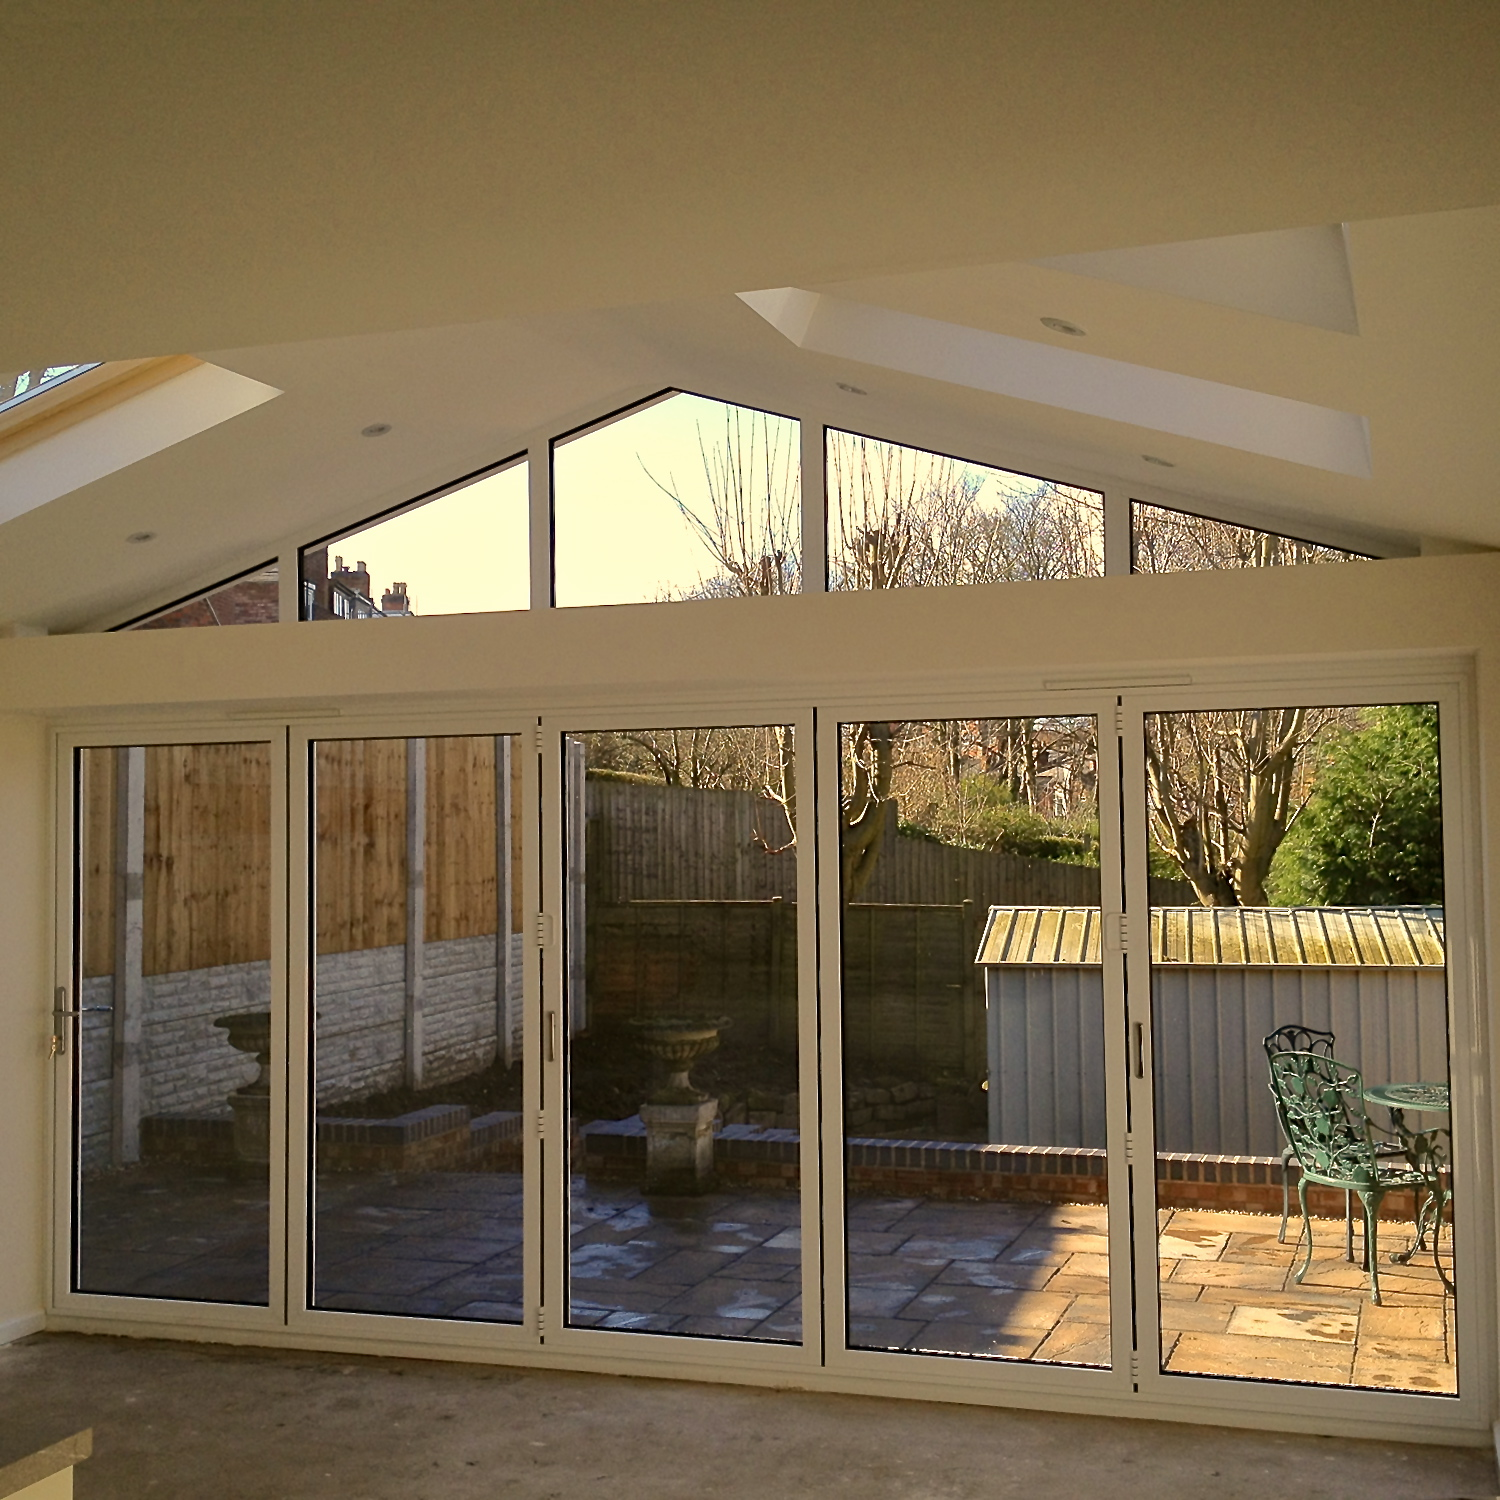 Internal view of external concertina doors with apex glazed roof